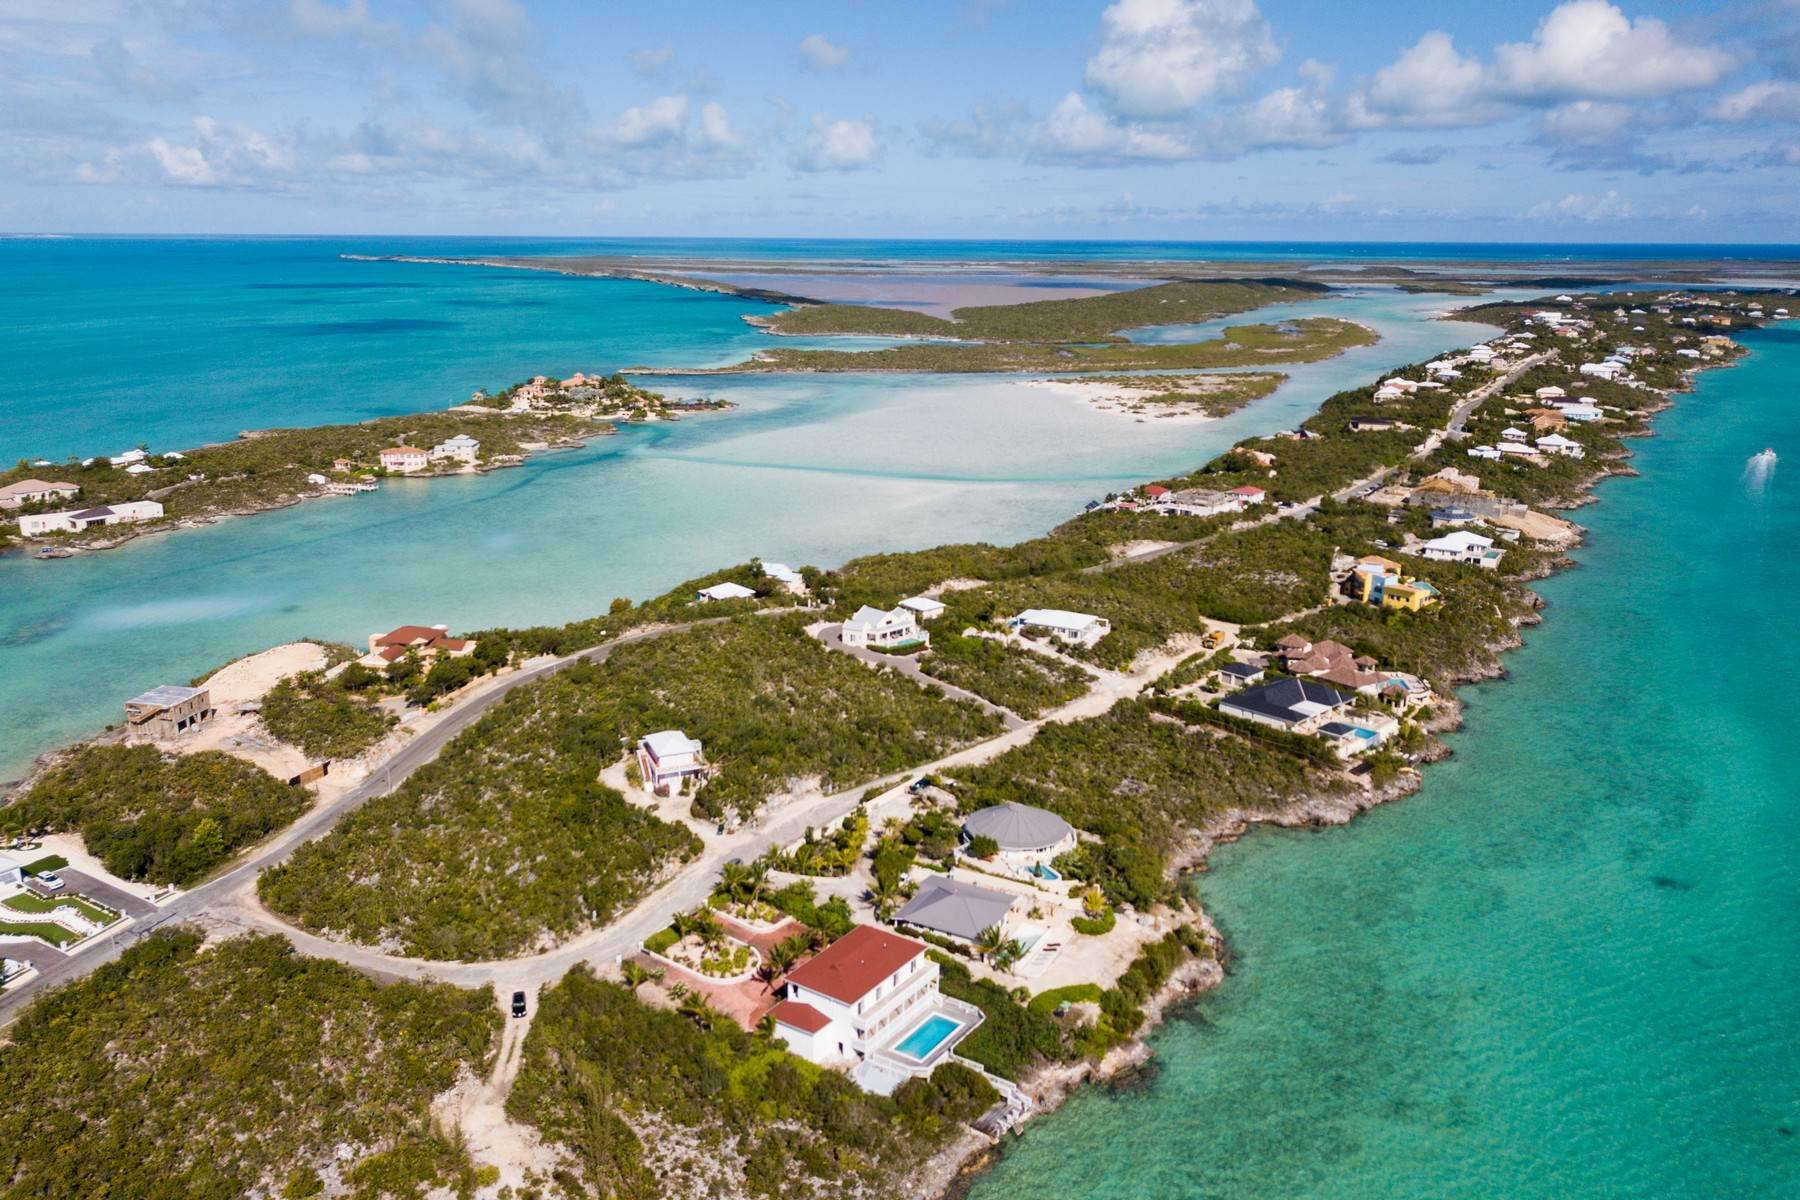 Terreno por un Venta en ELEVATED OCEAN VIEWS OVER SILLY CREEK Chalk Sound, Providenciales Islas Turcas y Caicos